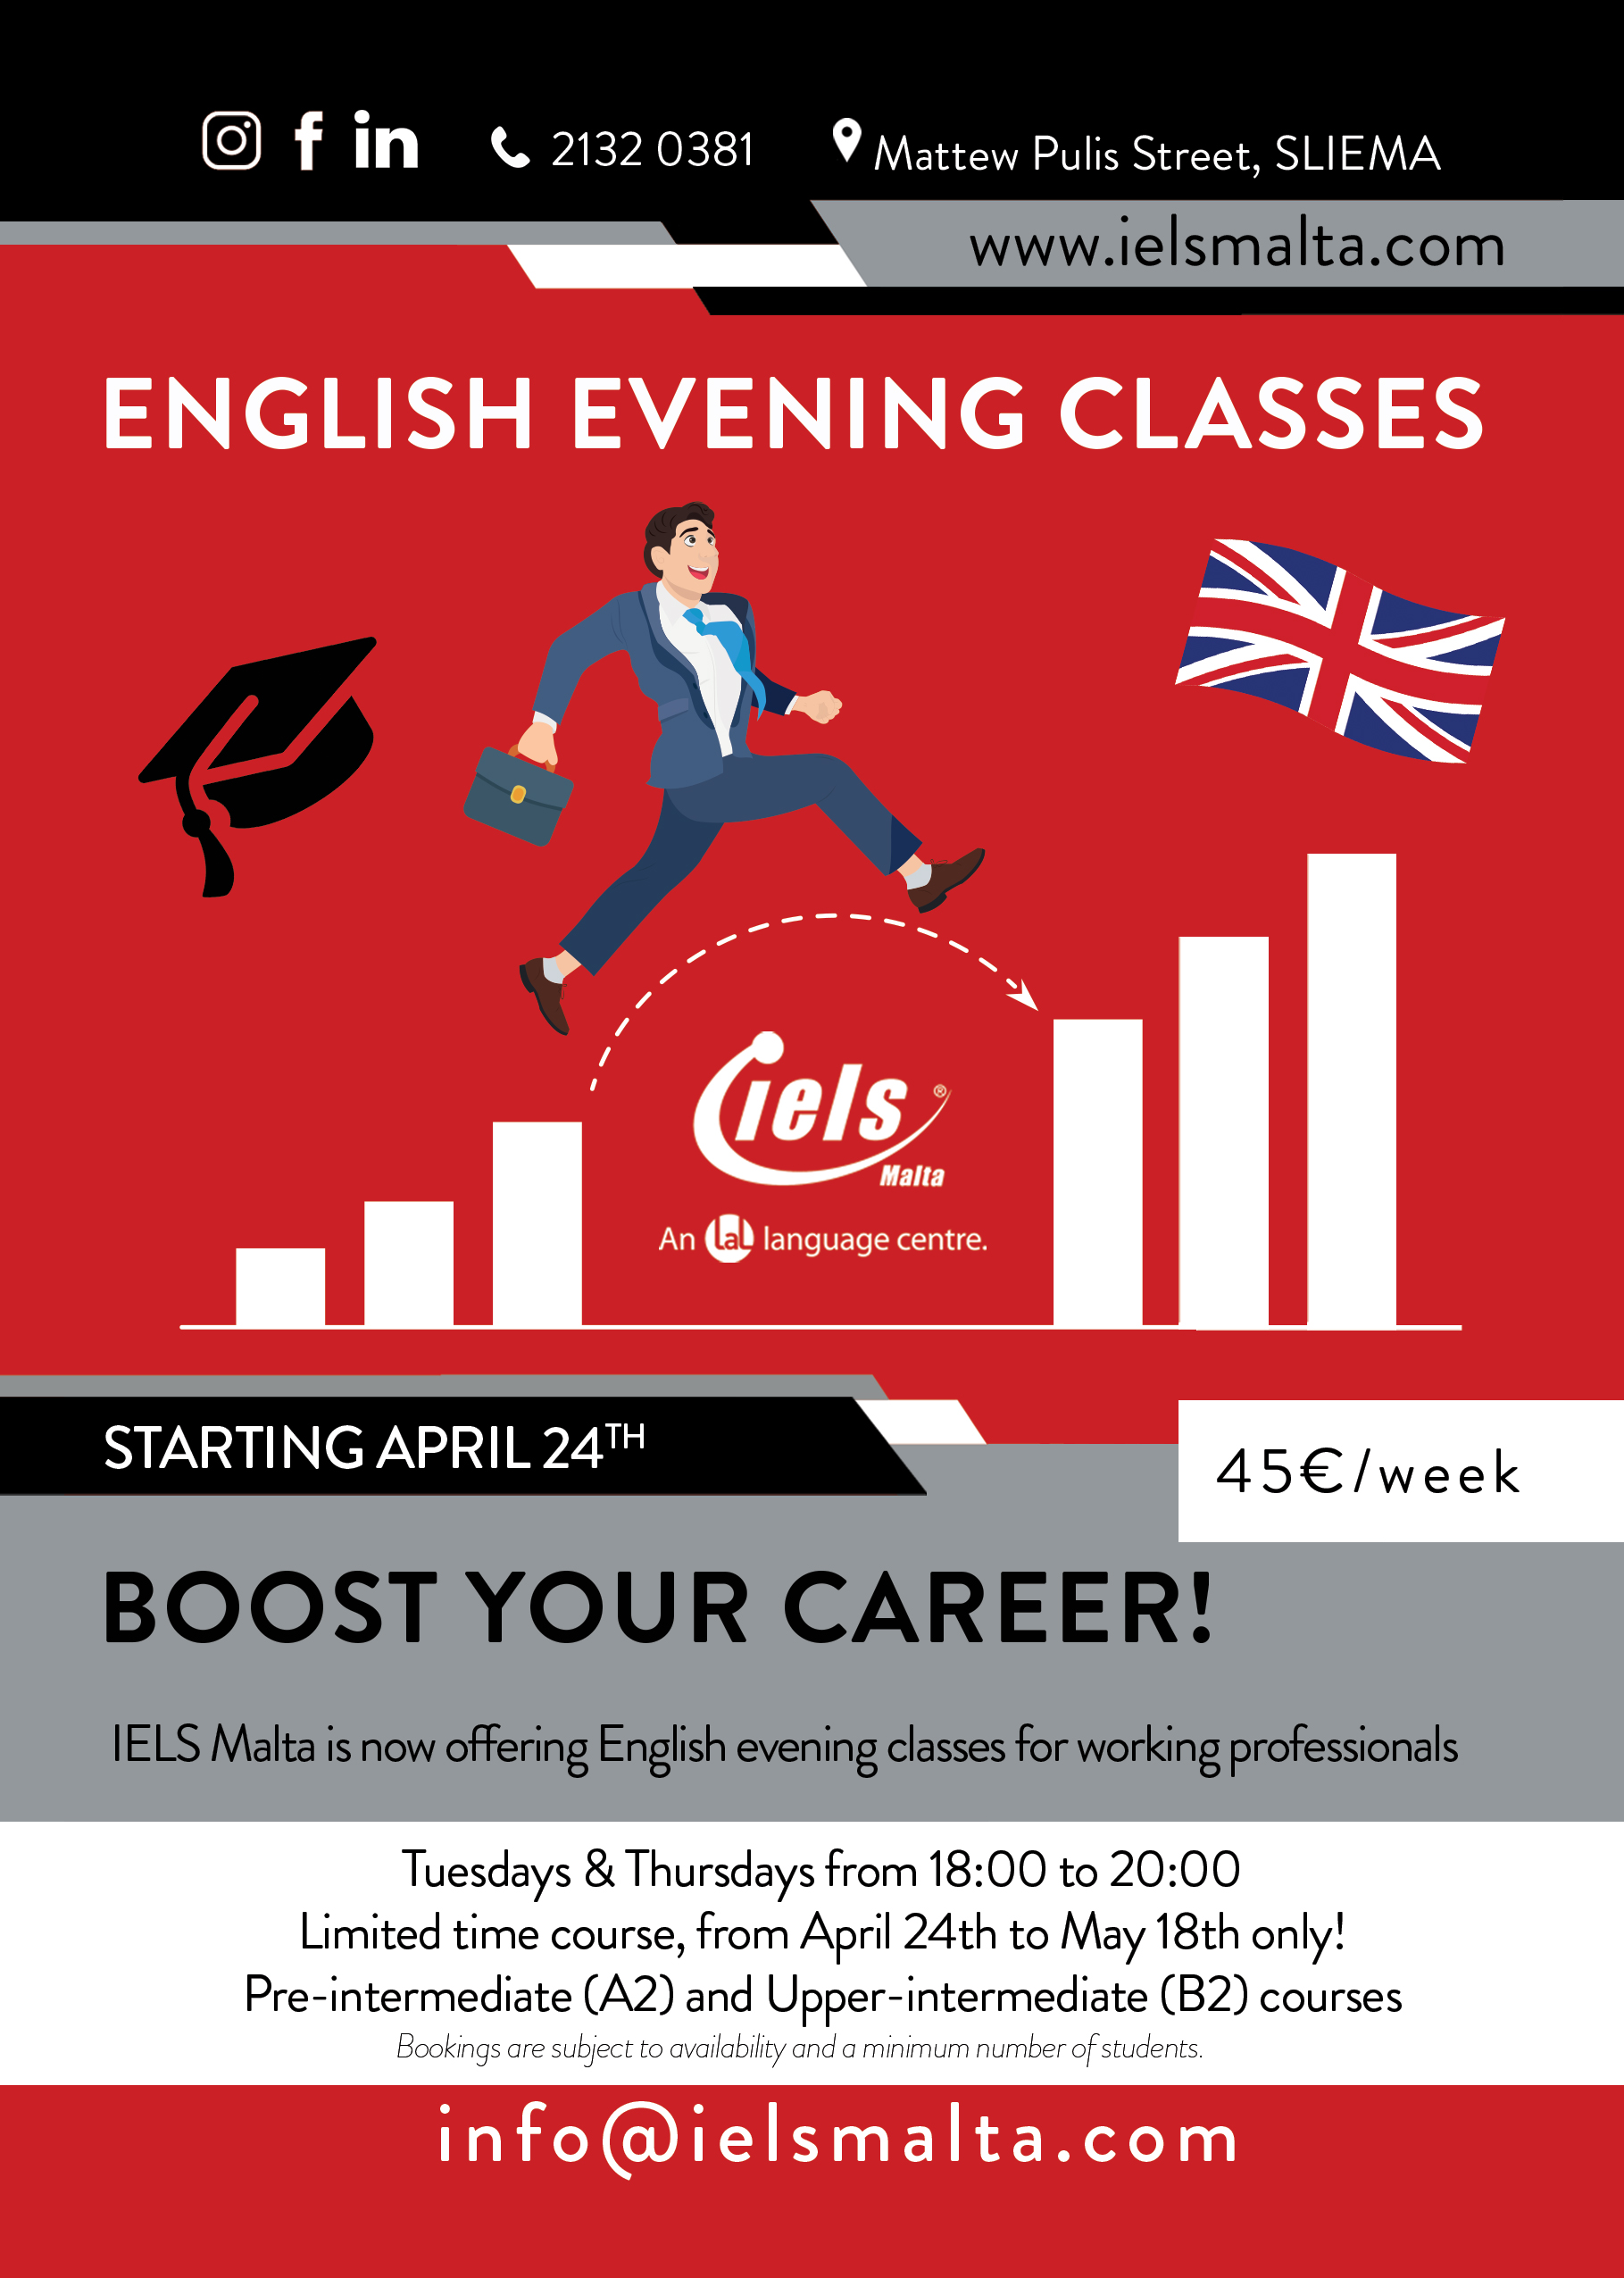 English Evening Classes IELS Malta